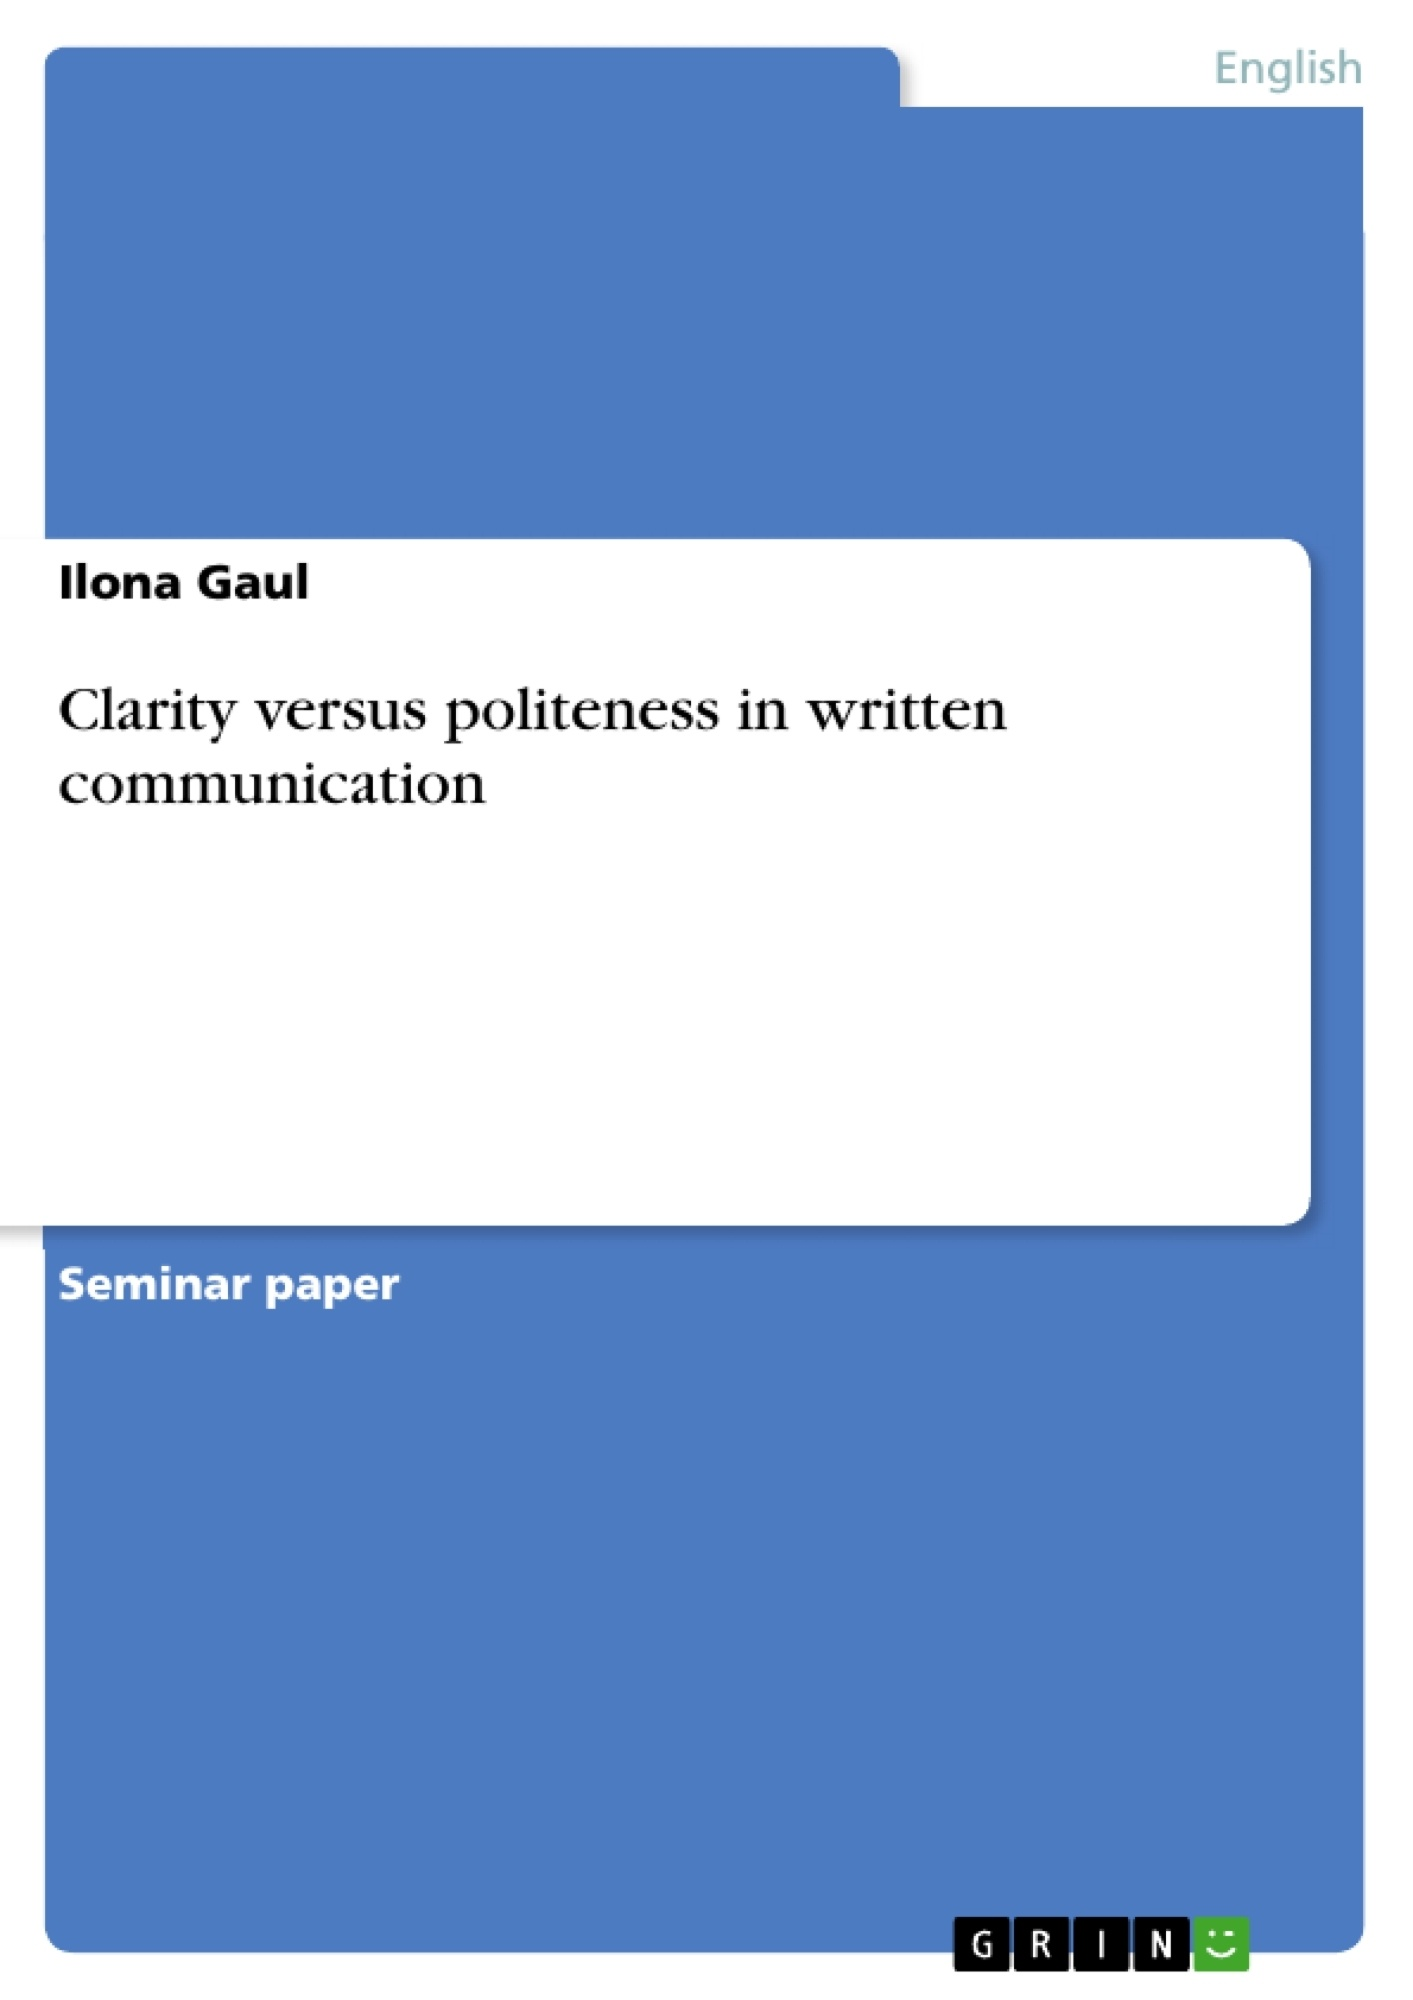 thesis on politeness theory